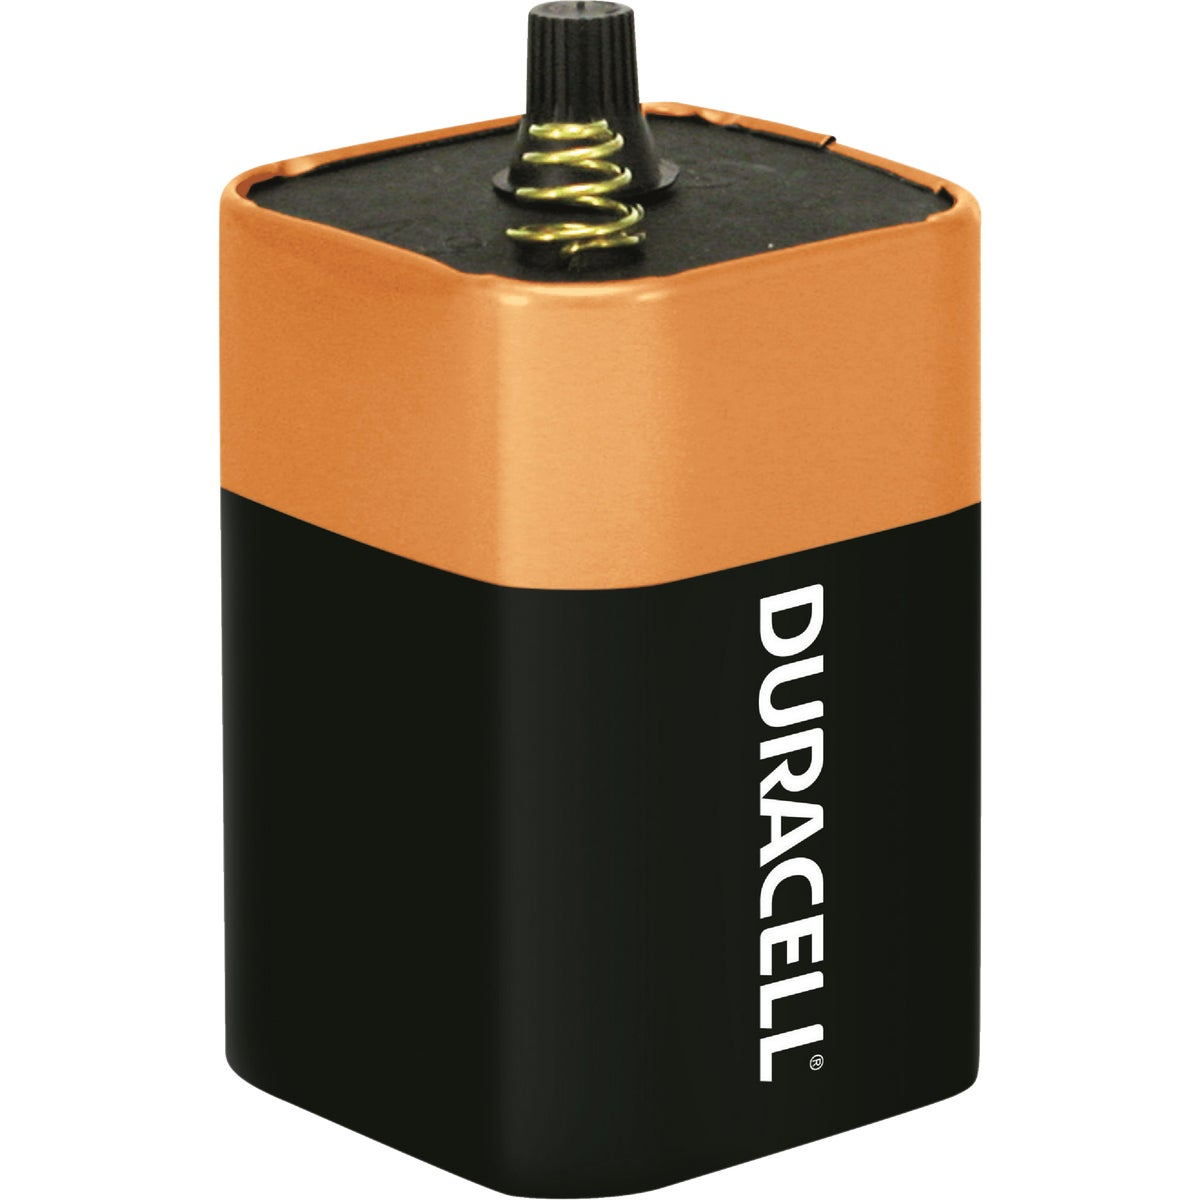 6V ALKA LANTERN BATTERY - 09006 by P & G  Duracell